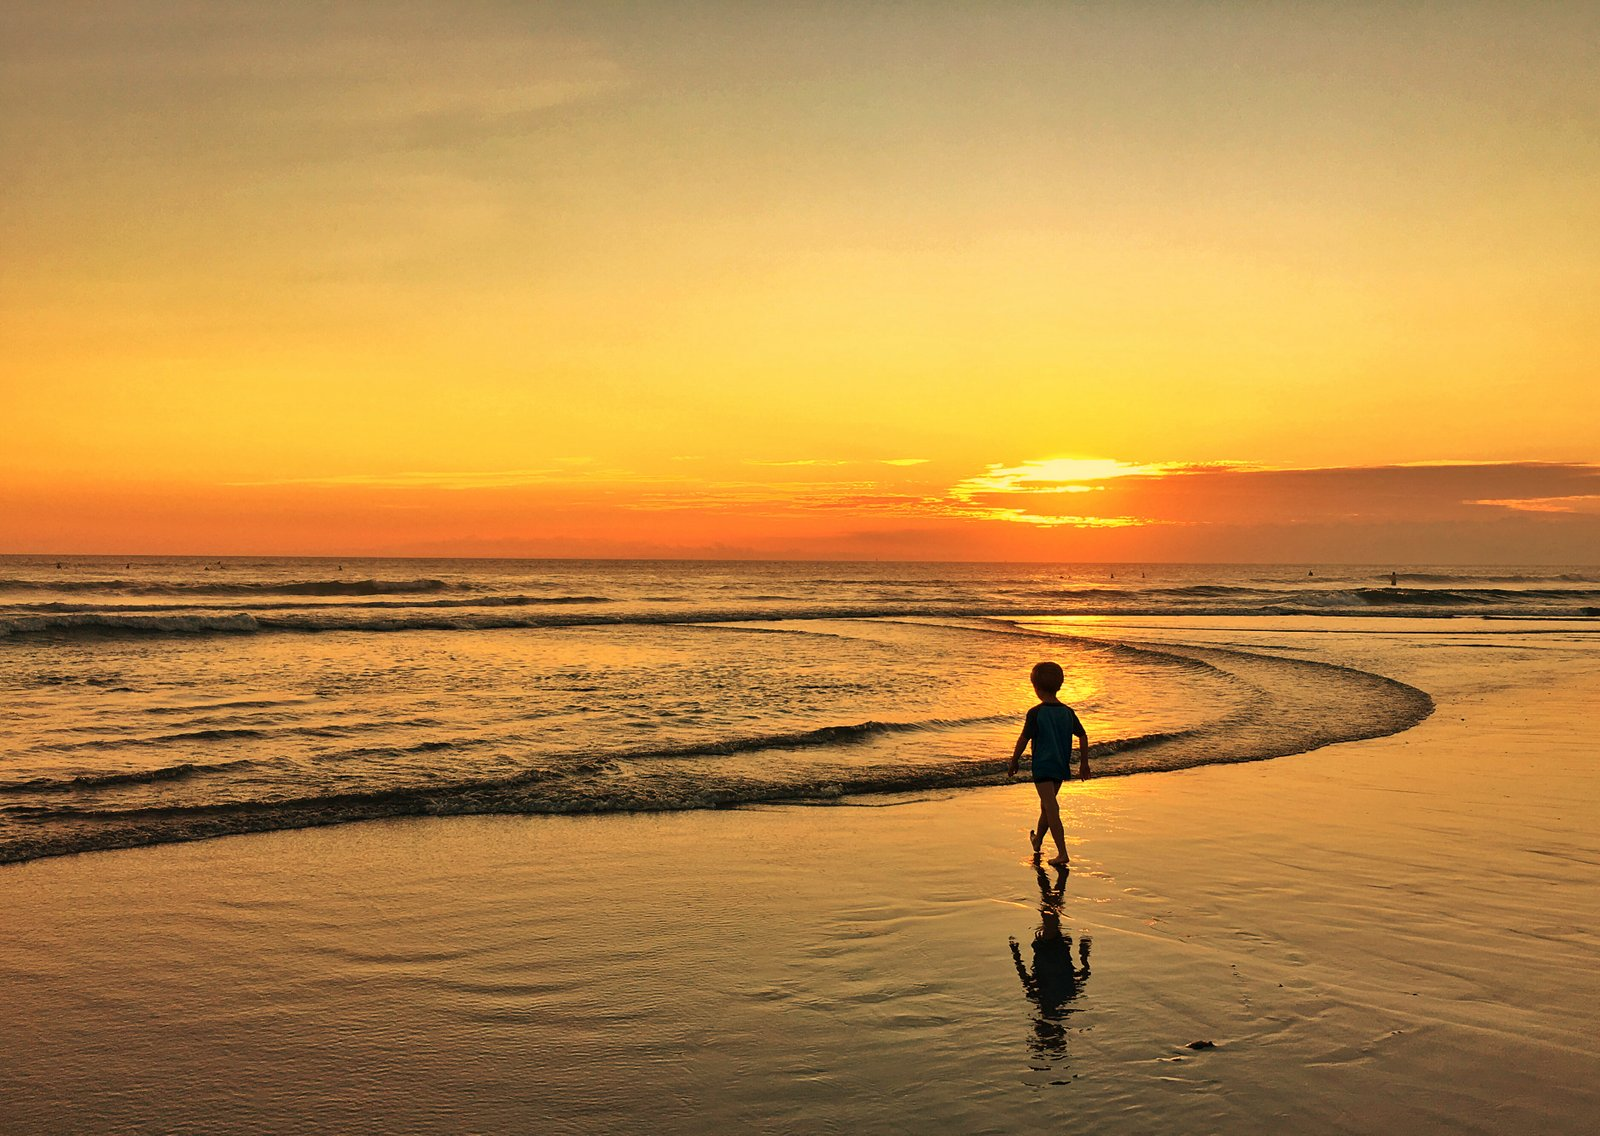 A kid standing on a beach with a sunset in the background